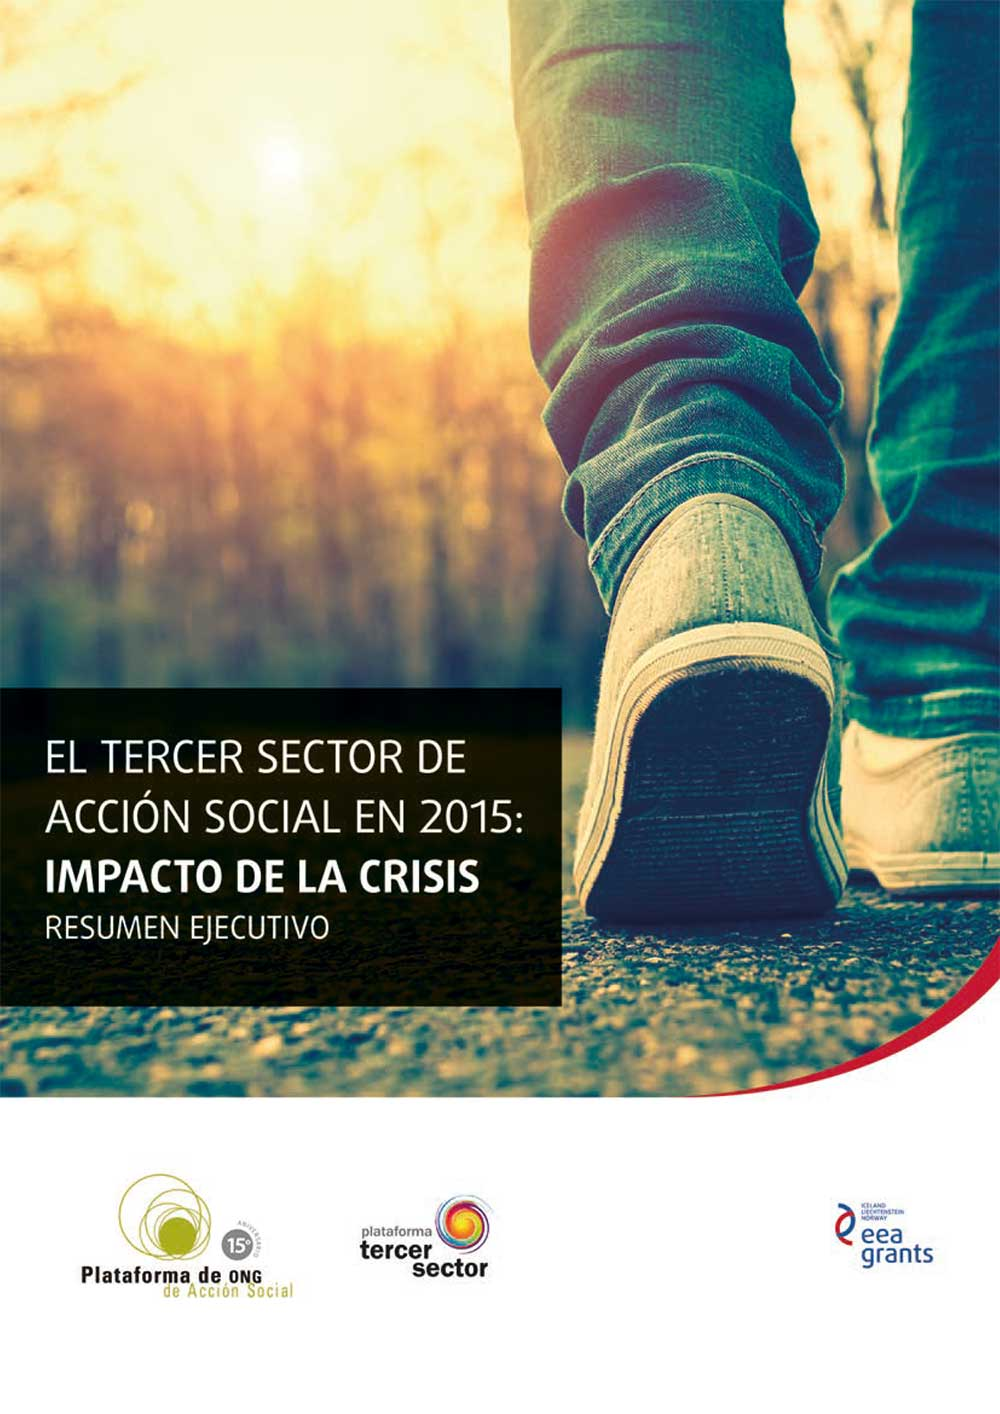 Study of the Third Sector of Social Action